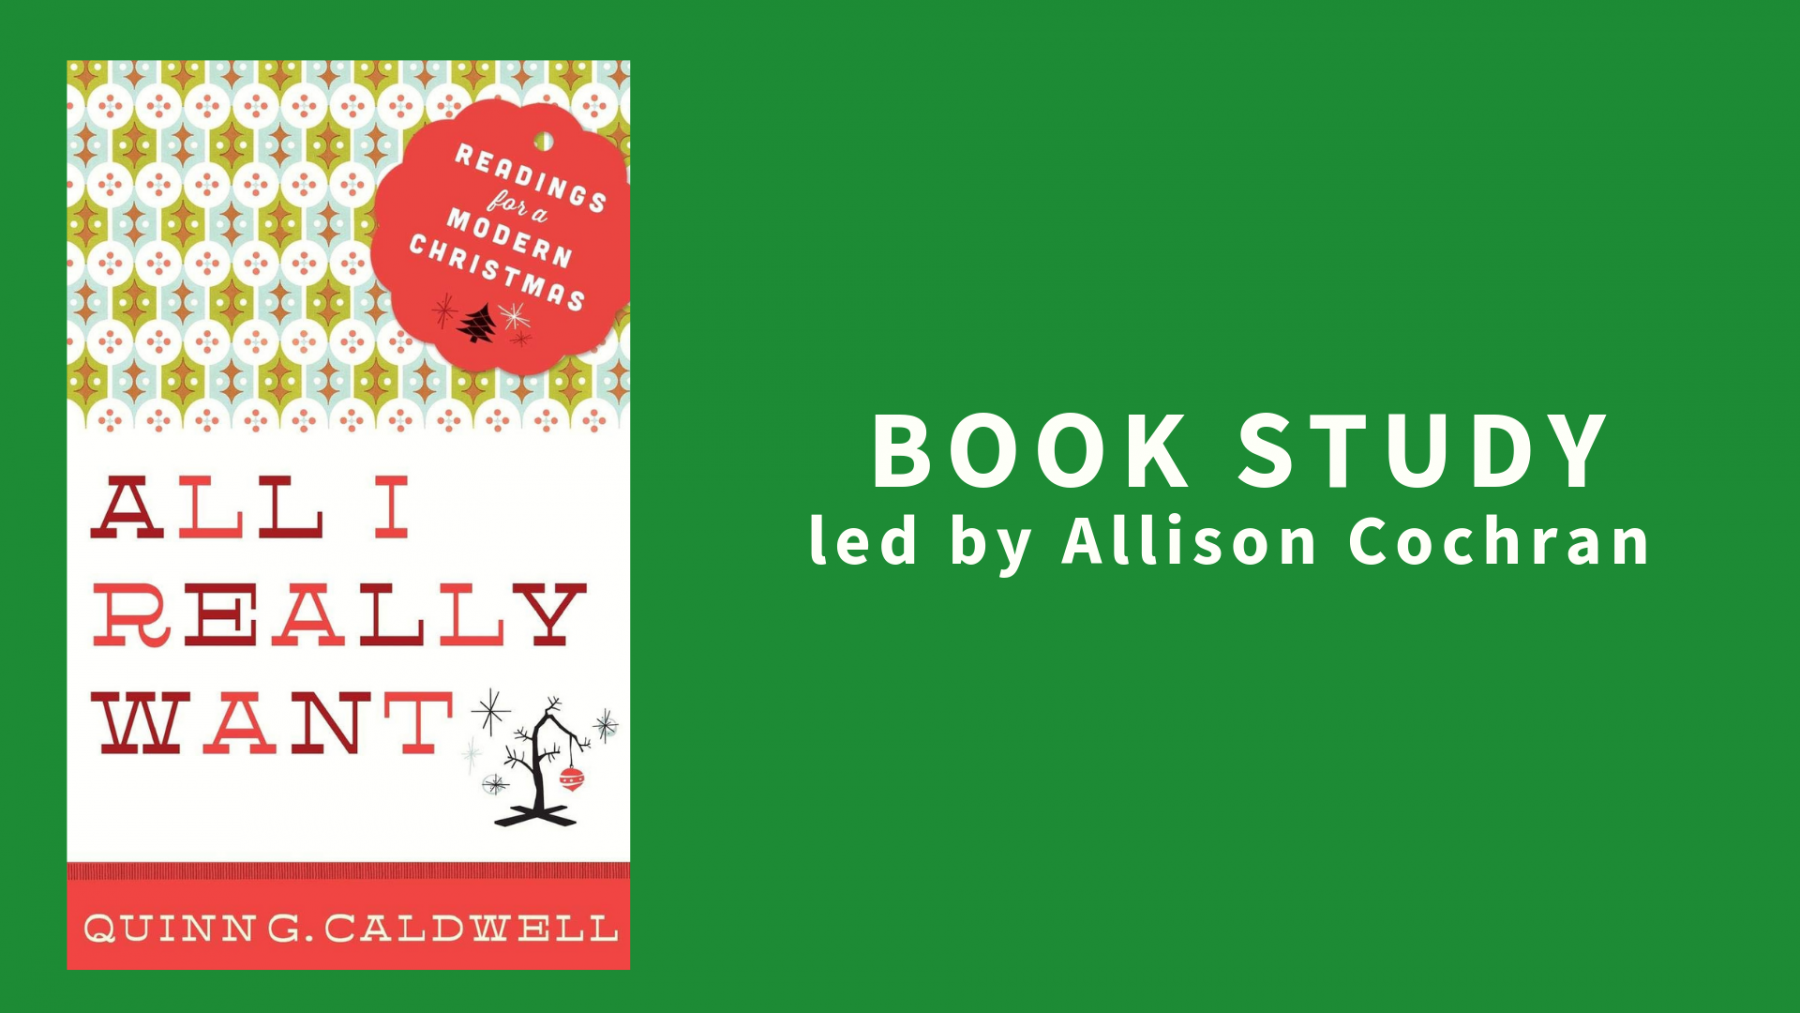 All I Really Want: Readings for a Modern Christmas by Quinn G. Caldwell